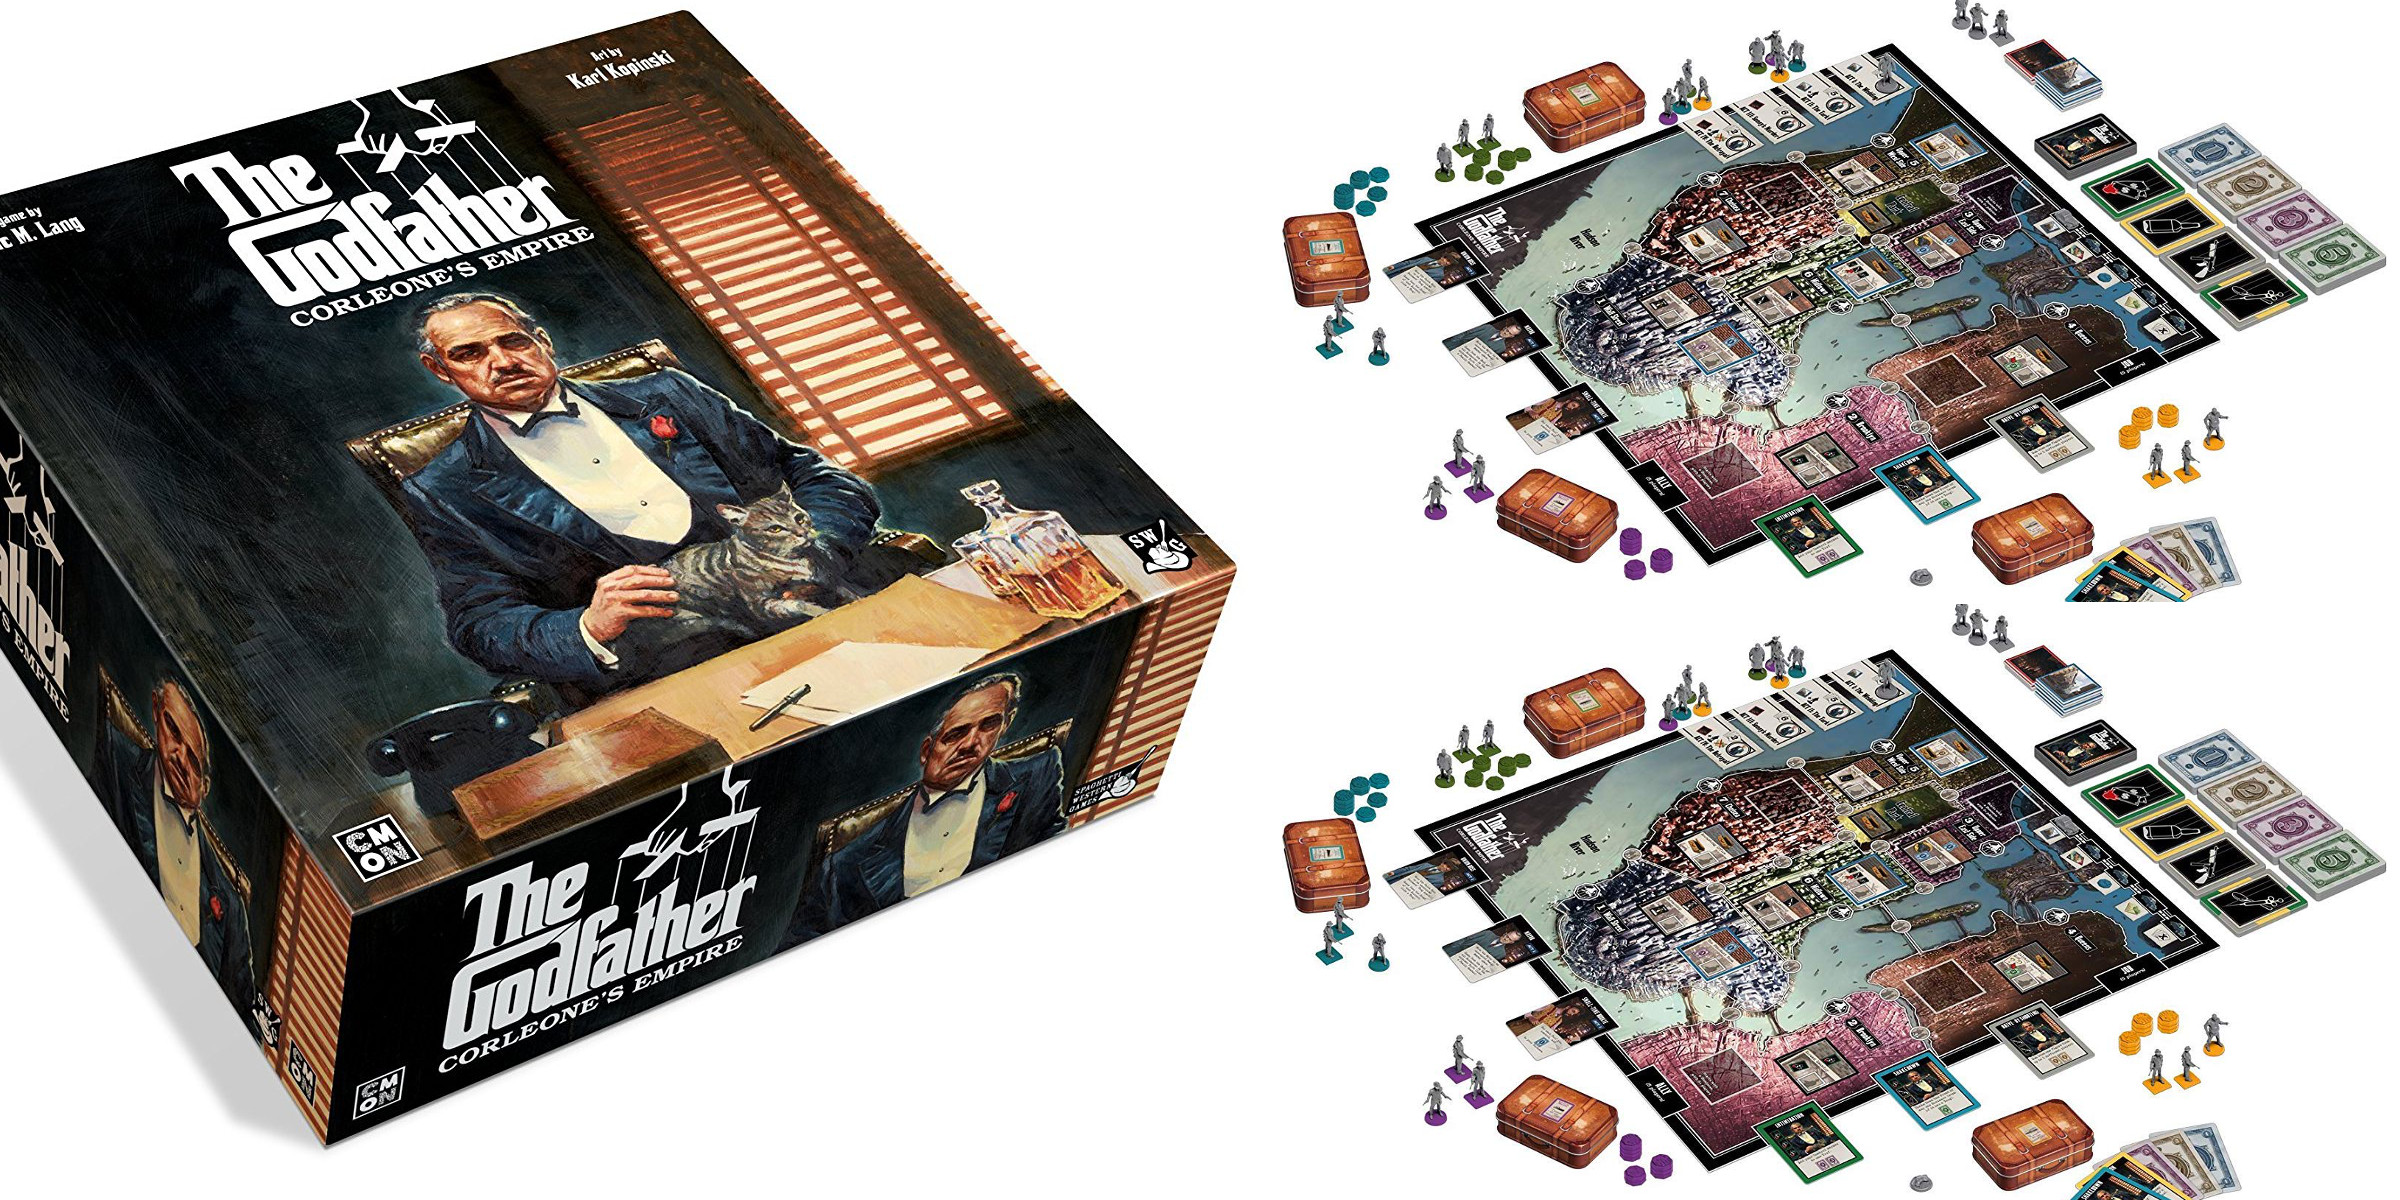 Make your friends an offer they can't refuse with The Godfather Board Game for $24 (Reg. $35+)